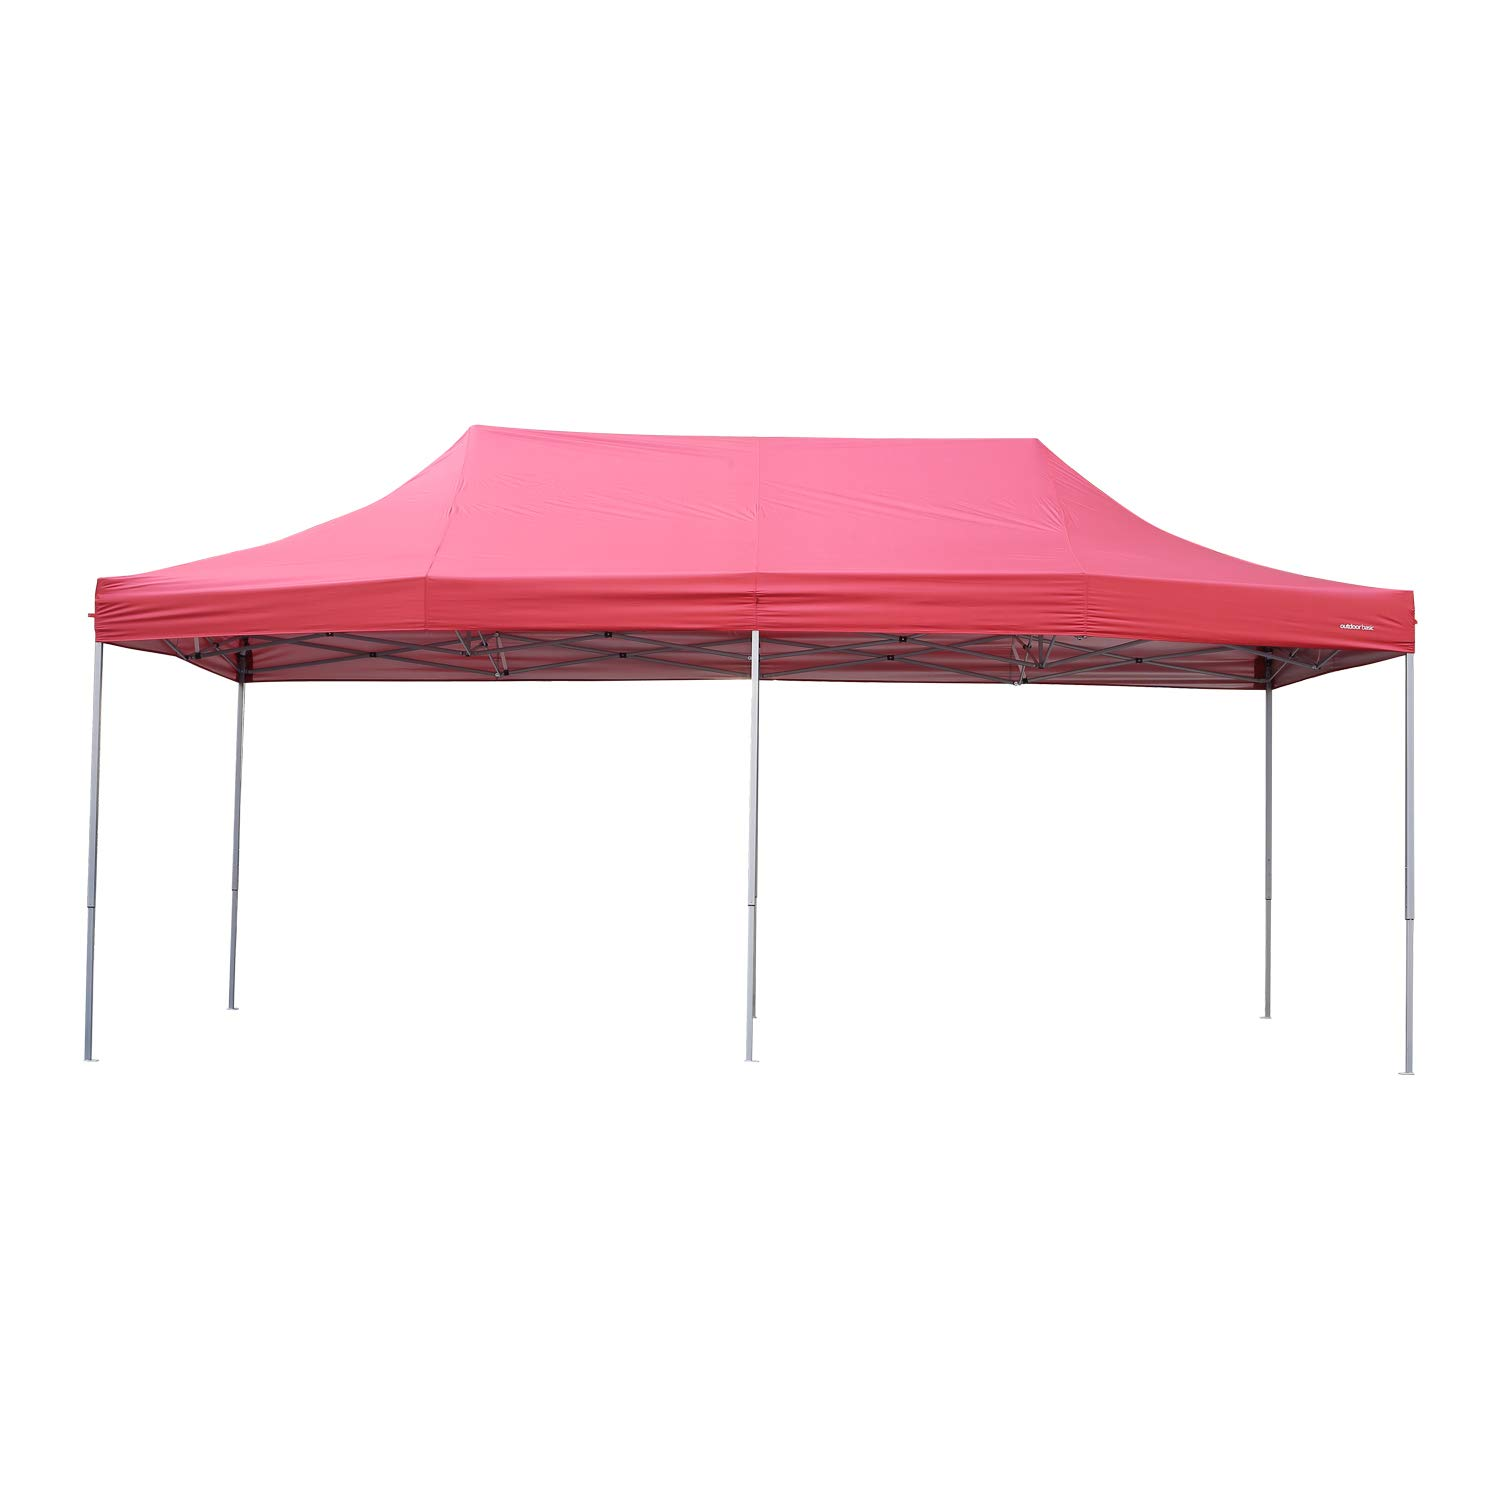 Outdoor Basic 10x20 Ft Pop up Canopy Party Tent Heavy Duty Instant Shelters for Events Red